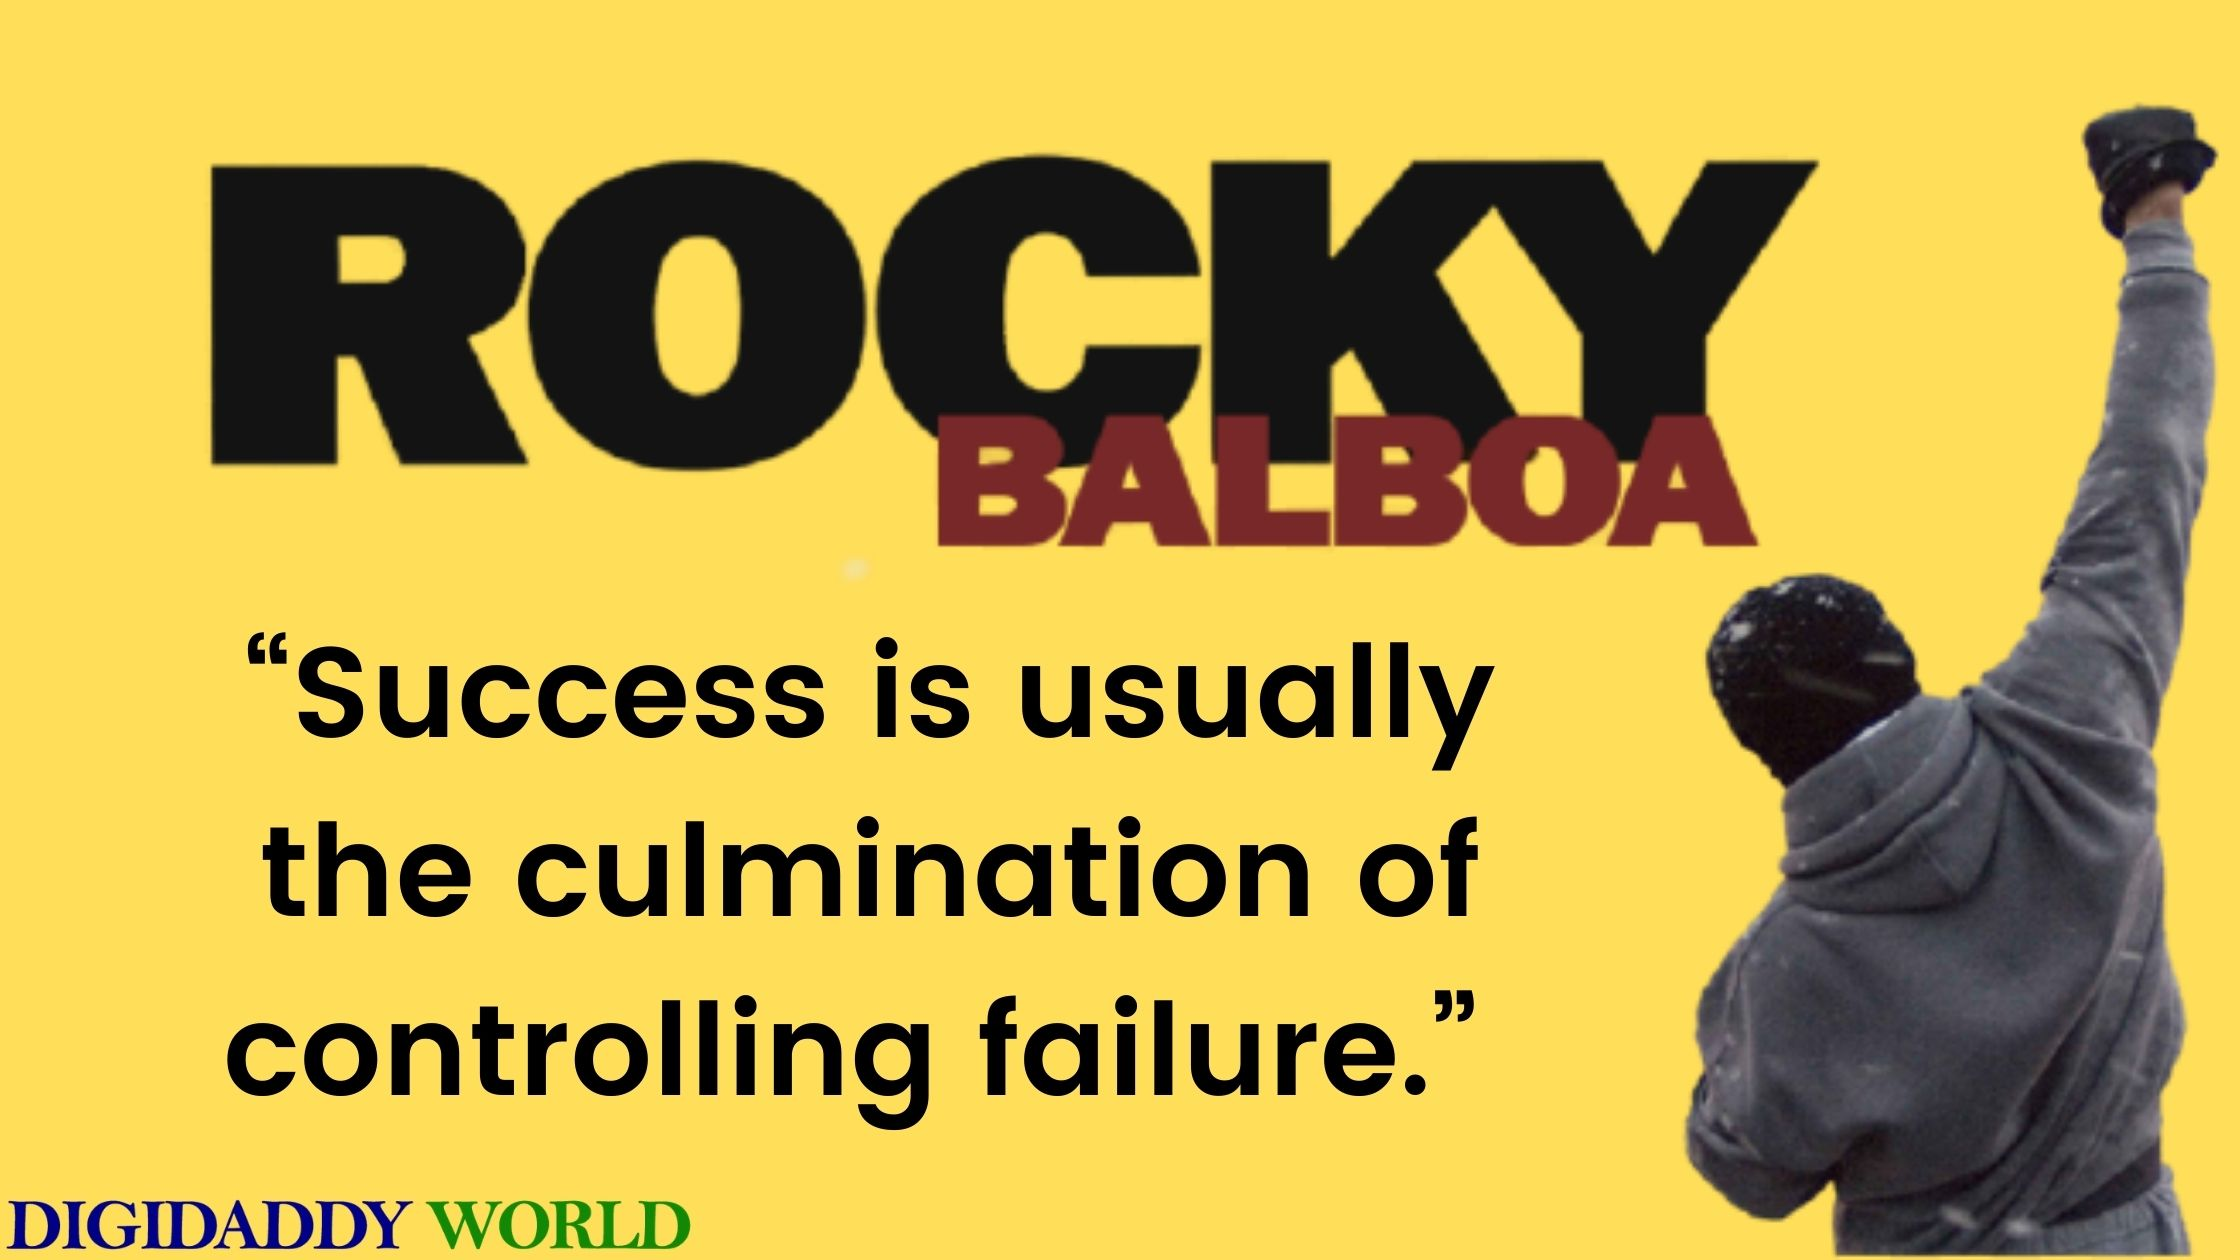 Famous Rocky Balboa Inspirational Quotes About Love, Life